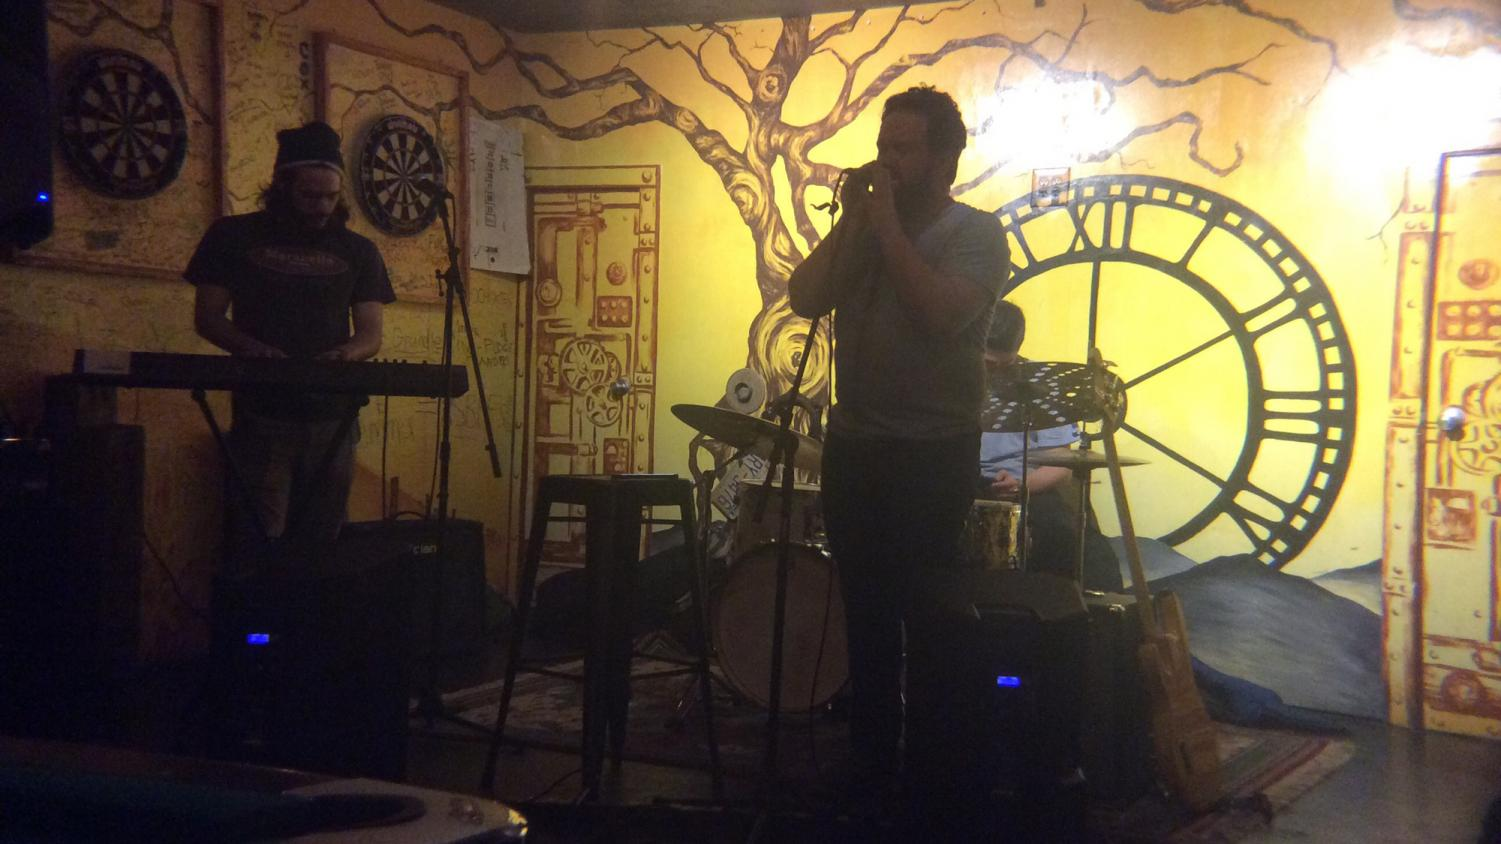 Sergio Grossi (left) and Jacob Smith (right) perform in the house band for TApp Room's Open Mic Night. The establishment hosts this event Tuesday nights every week. Photo by Q Russell